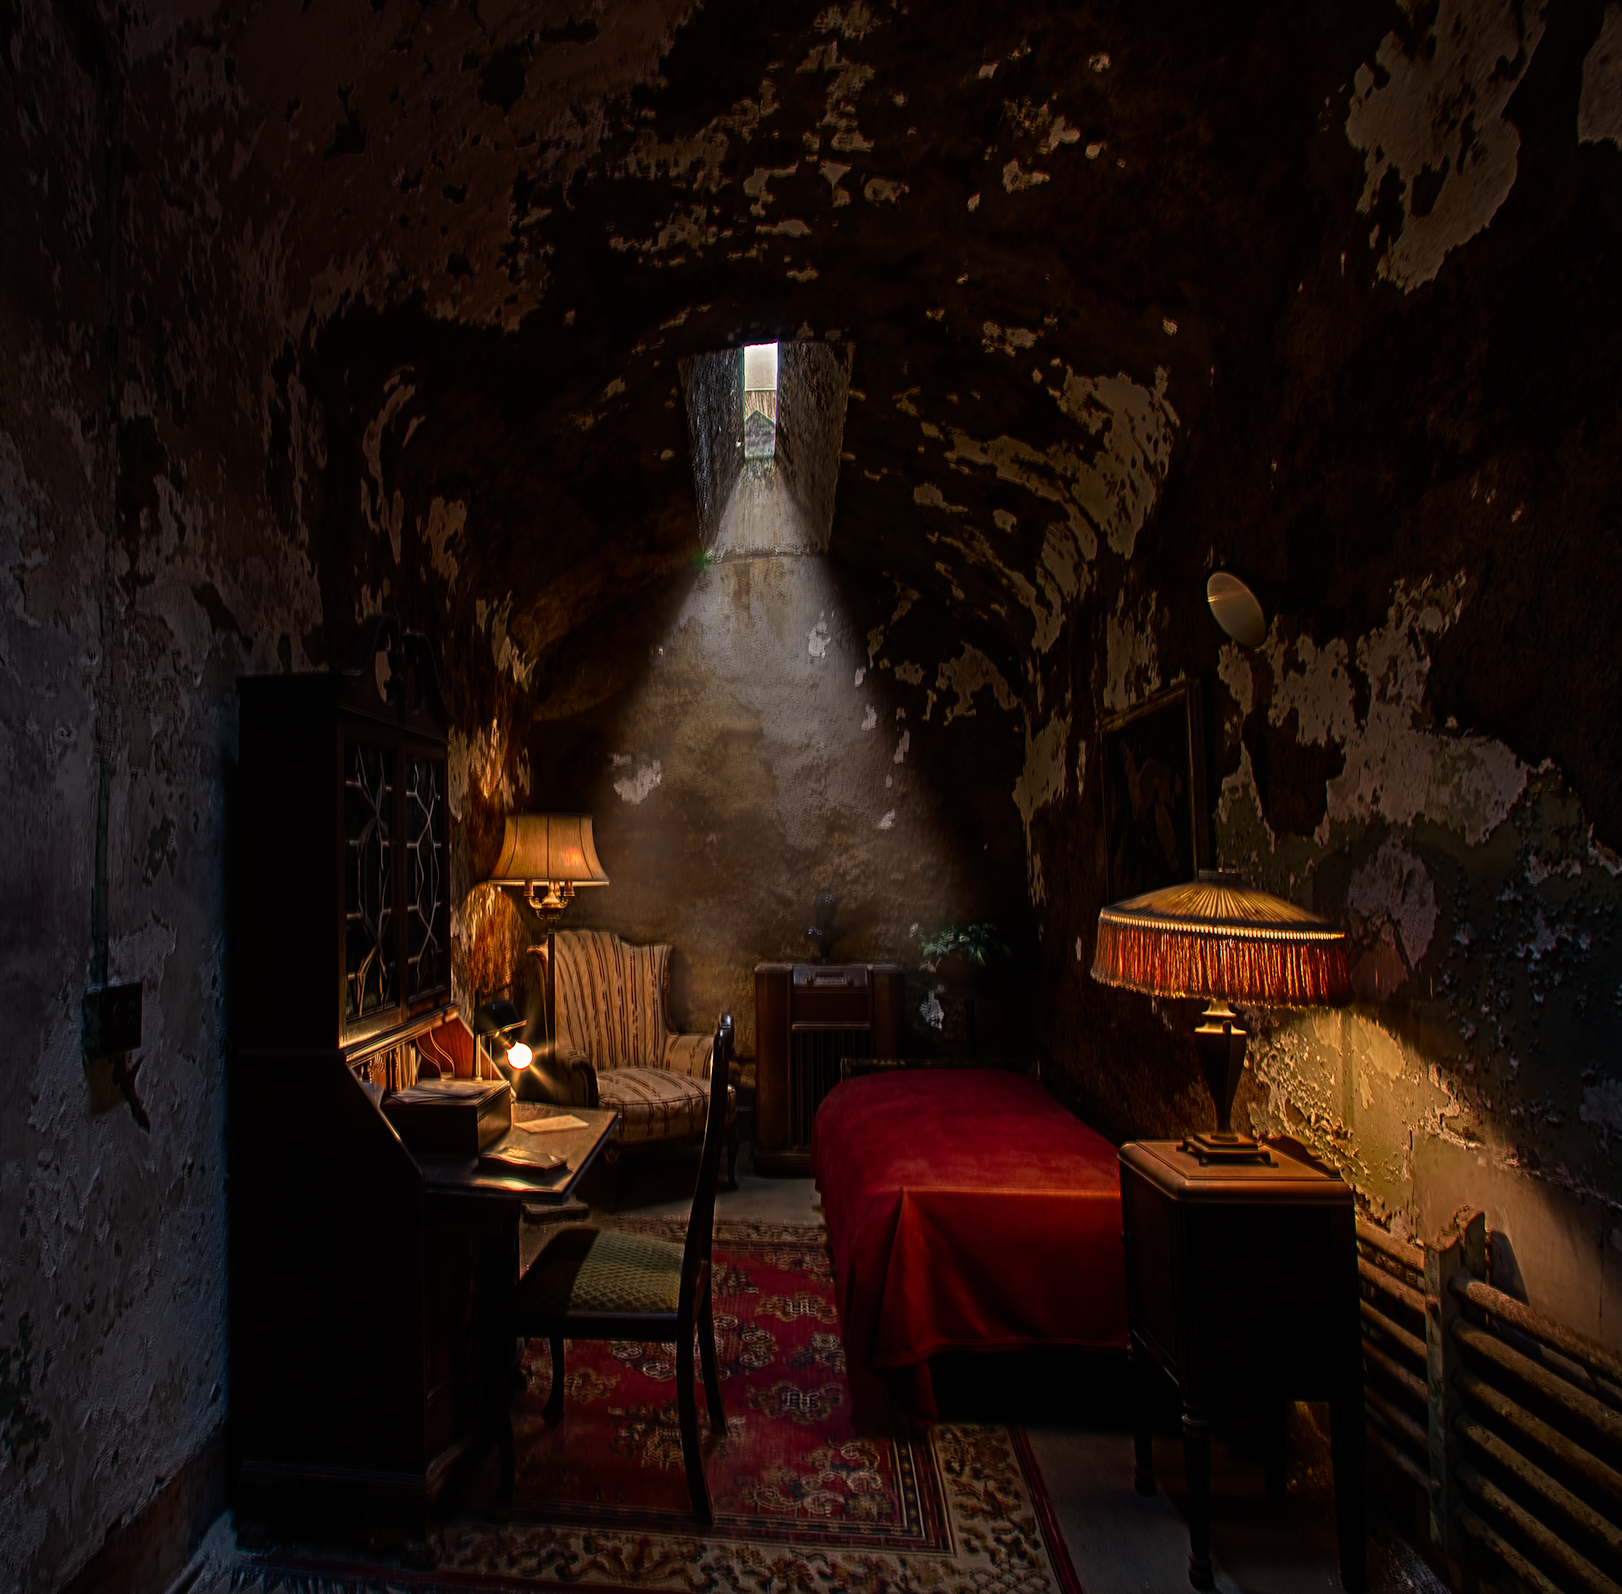 Al Capone's special cell at Eastern State Penitentiary